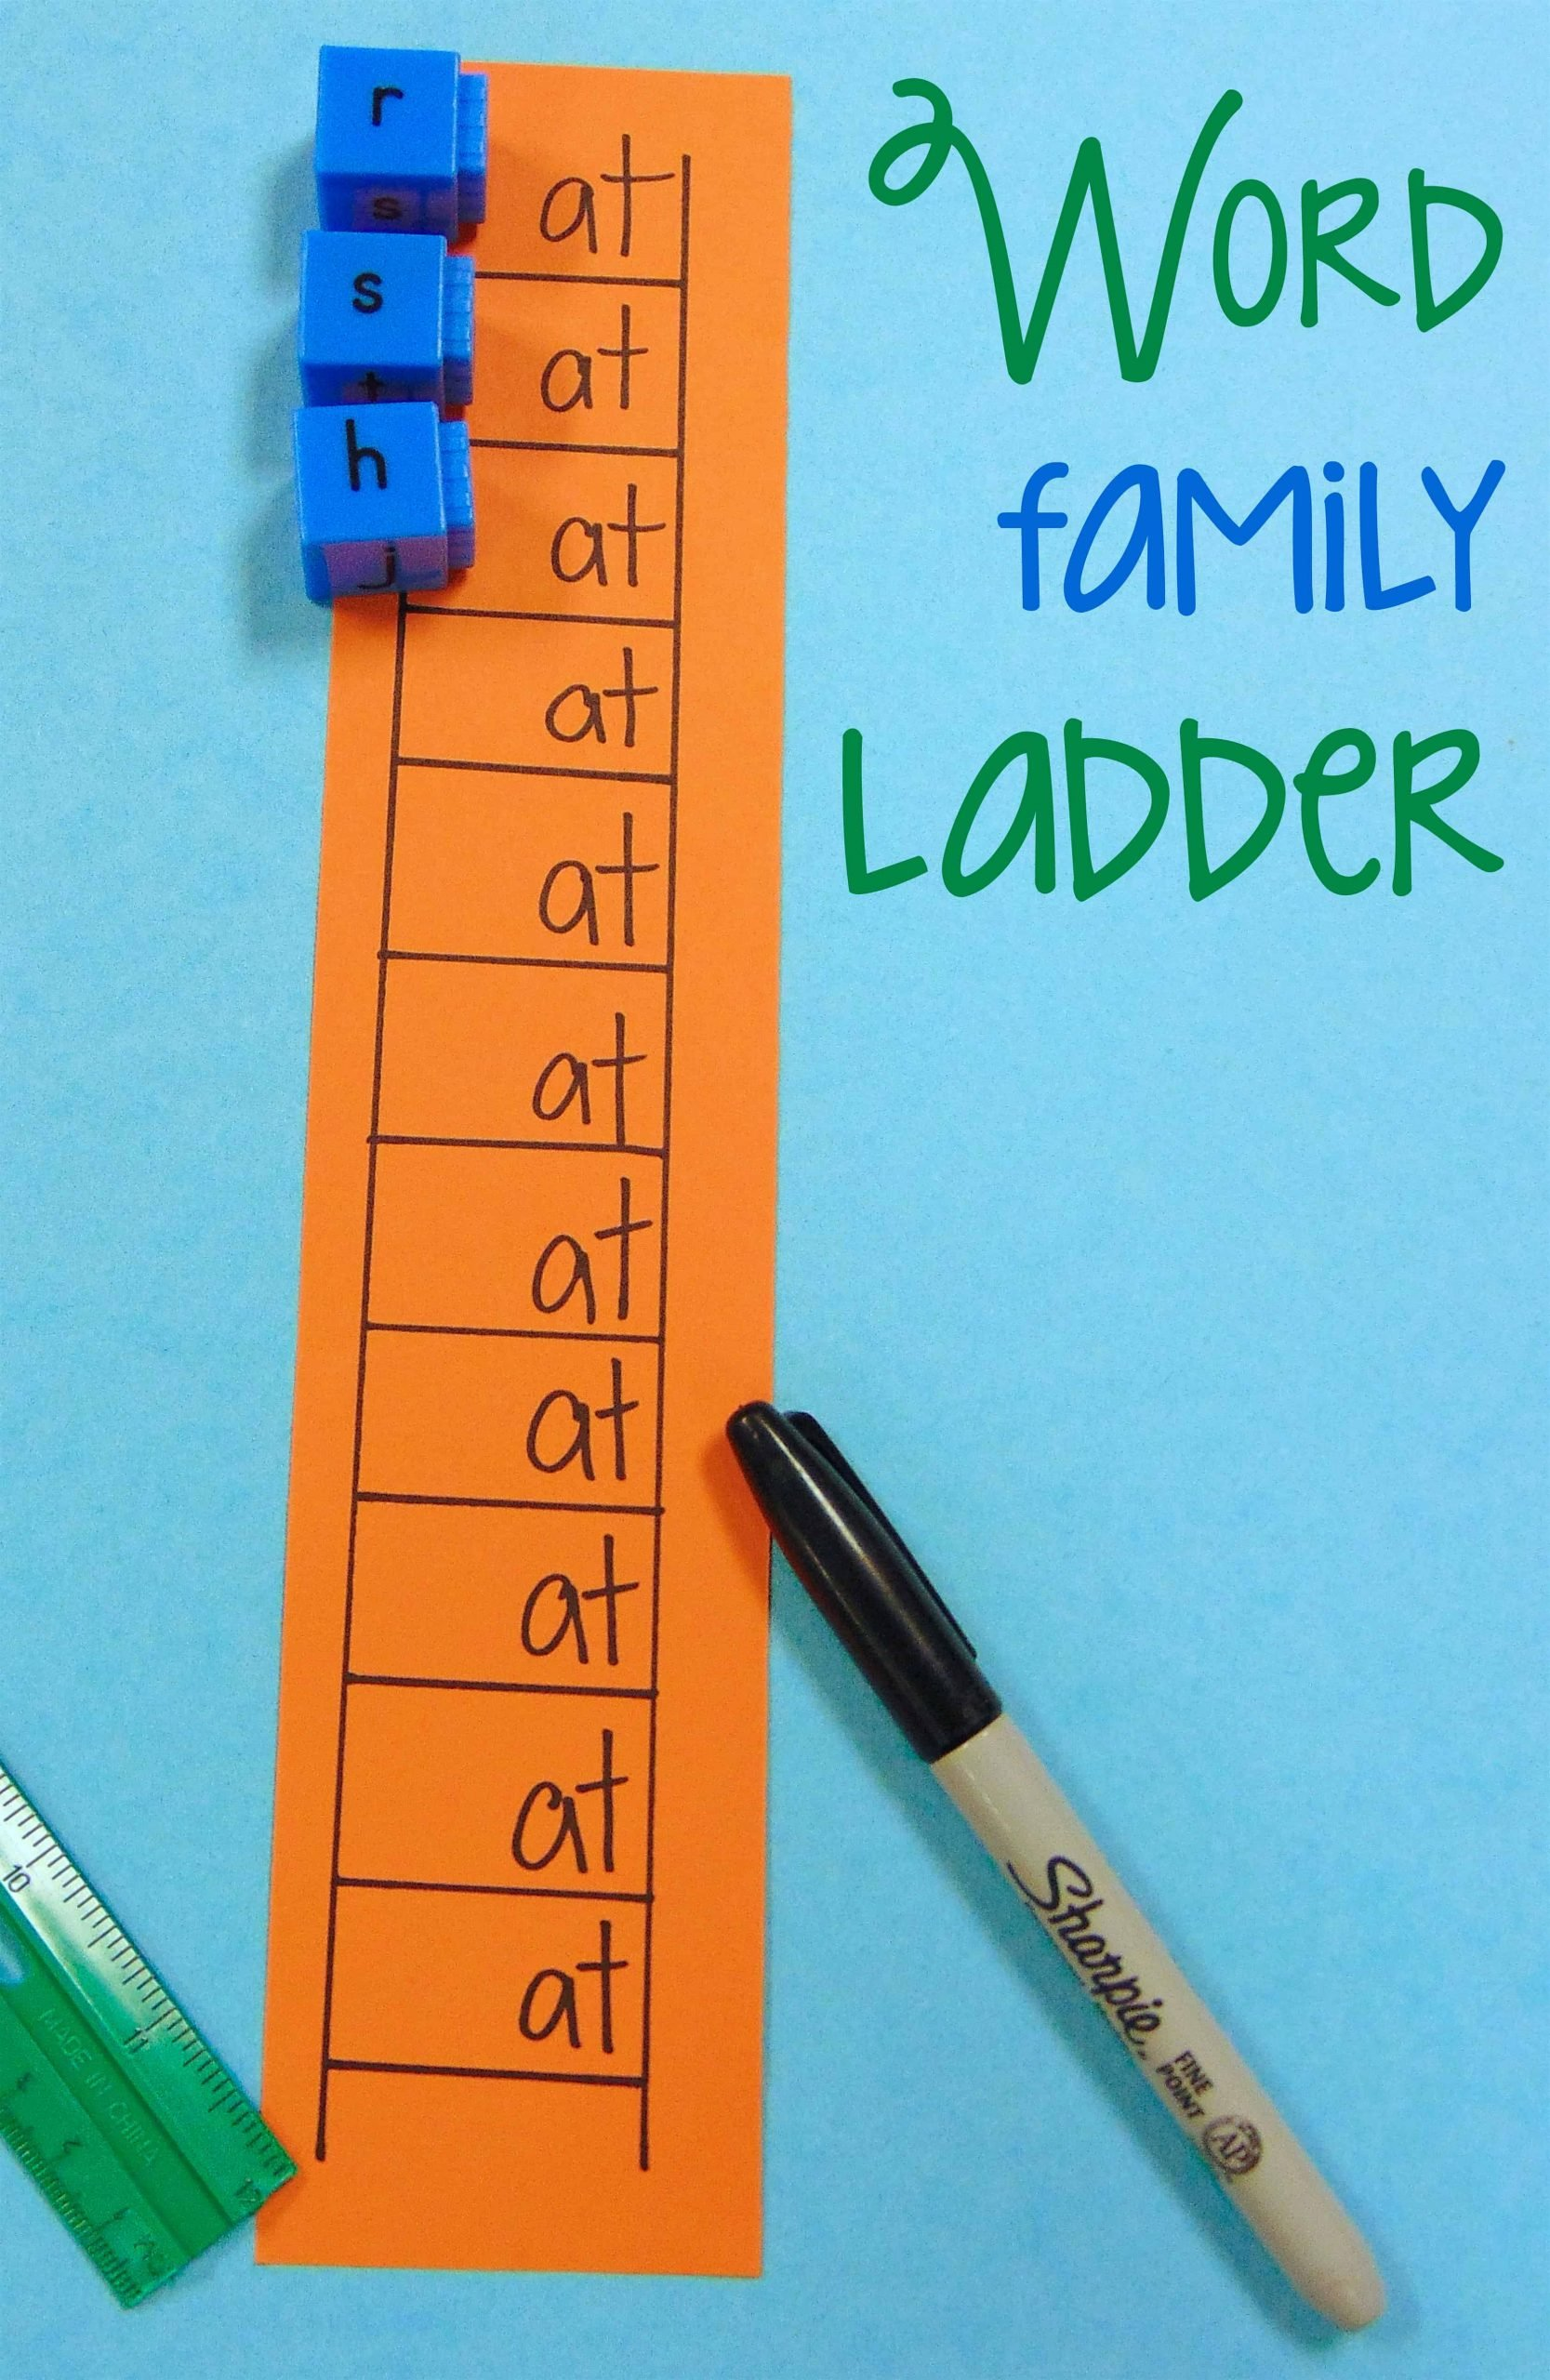 Word Ladder Worksheets Diy Word Family Ladder Center Activity Classroom Hack